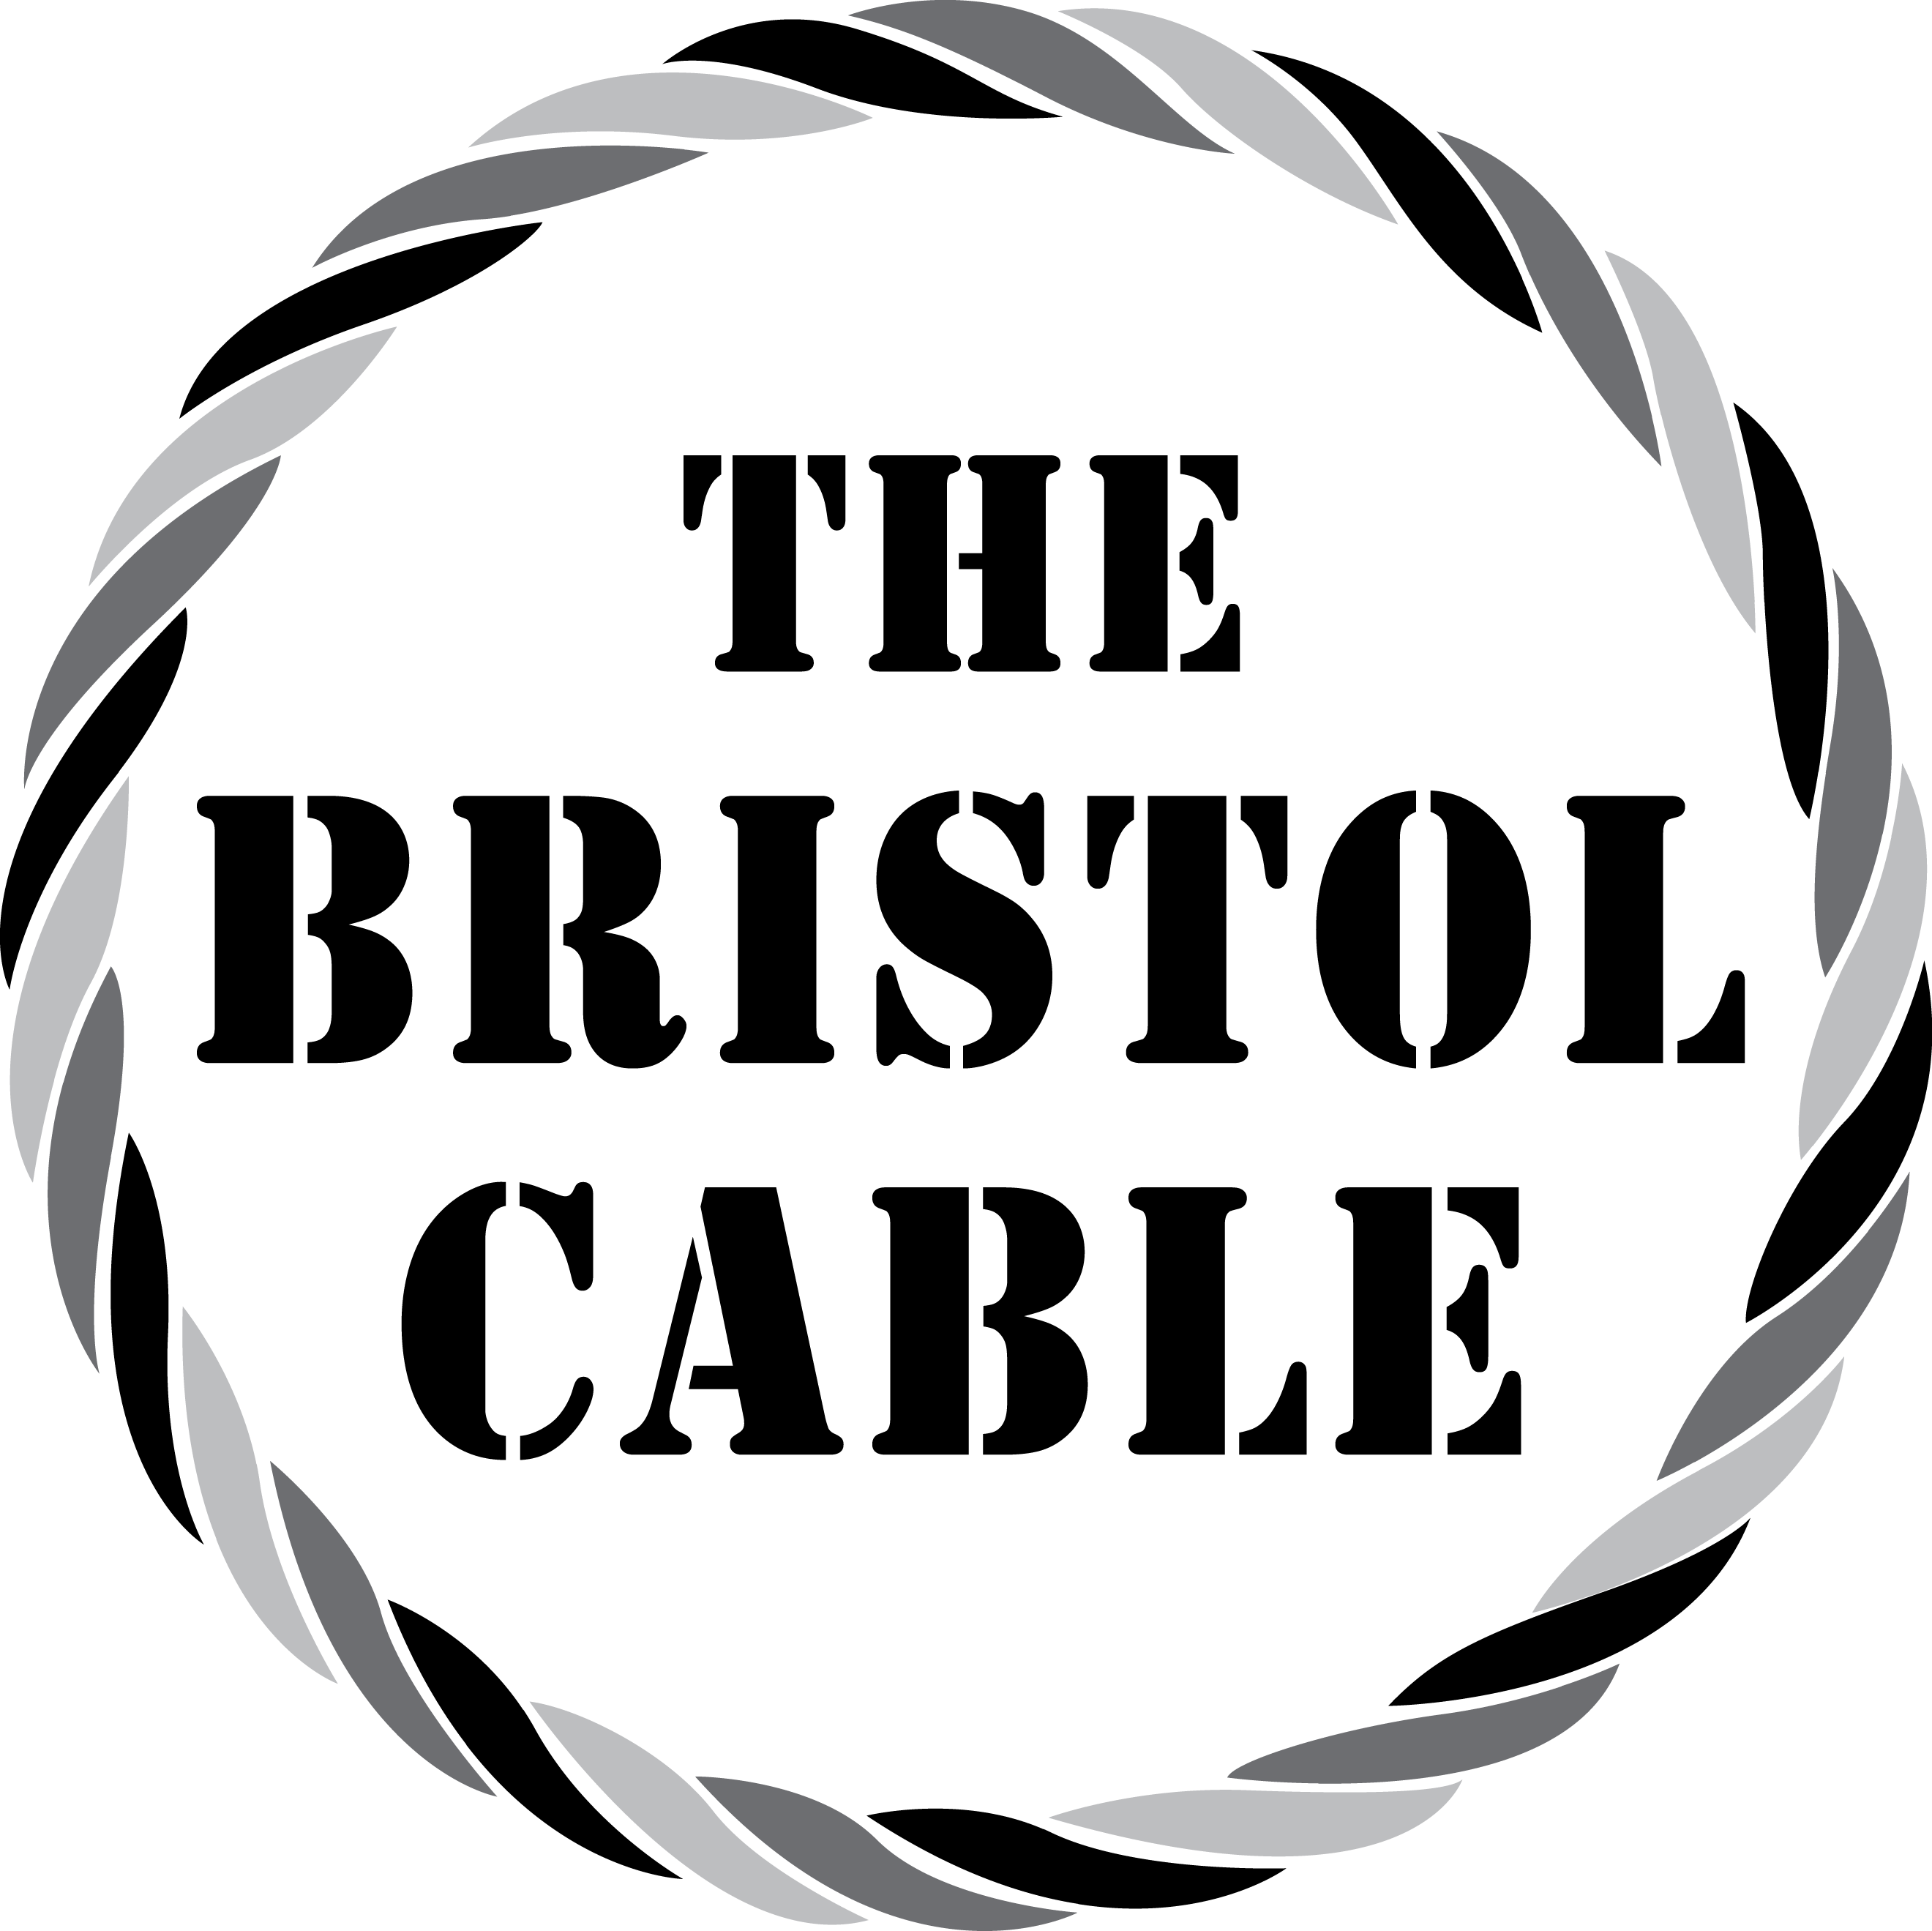 Organise. Create. Exchange. Bristol Cable hosting 30+ free workshops on the media, sign up now